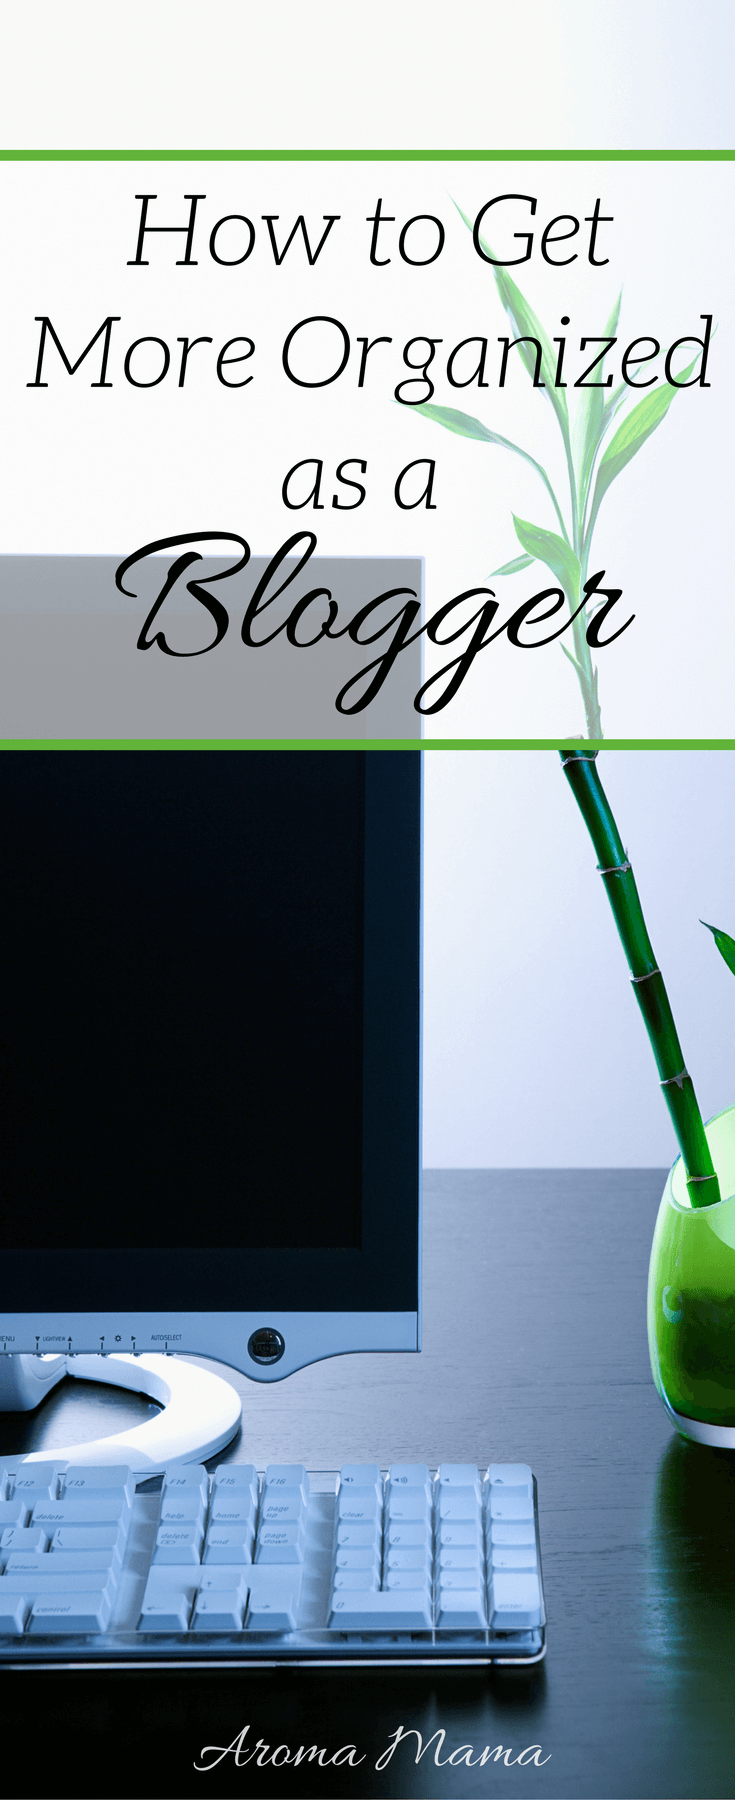 If you're a blogger, this post is for you! It includes tips on how to get more organized as a blogger plus a free printable to put it into action!